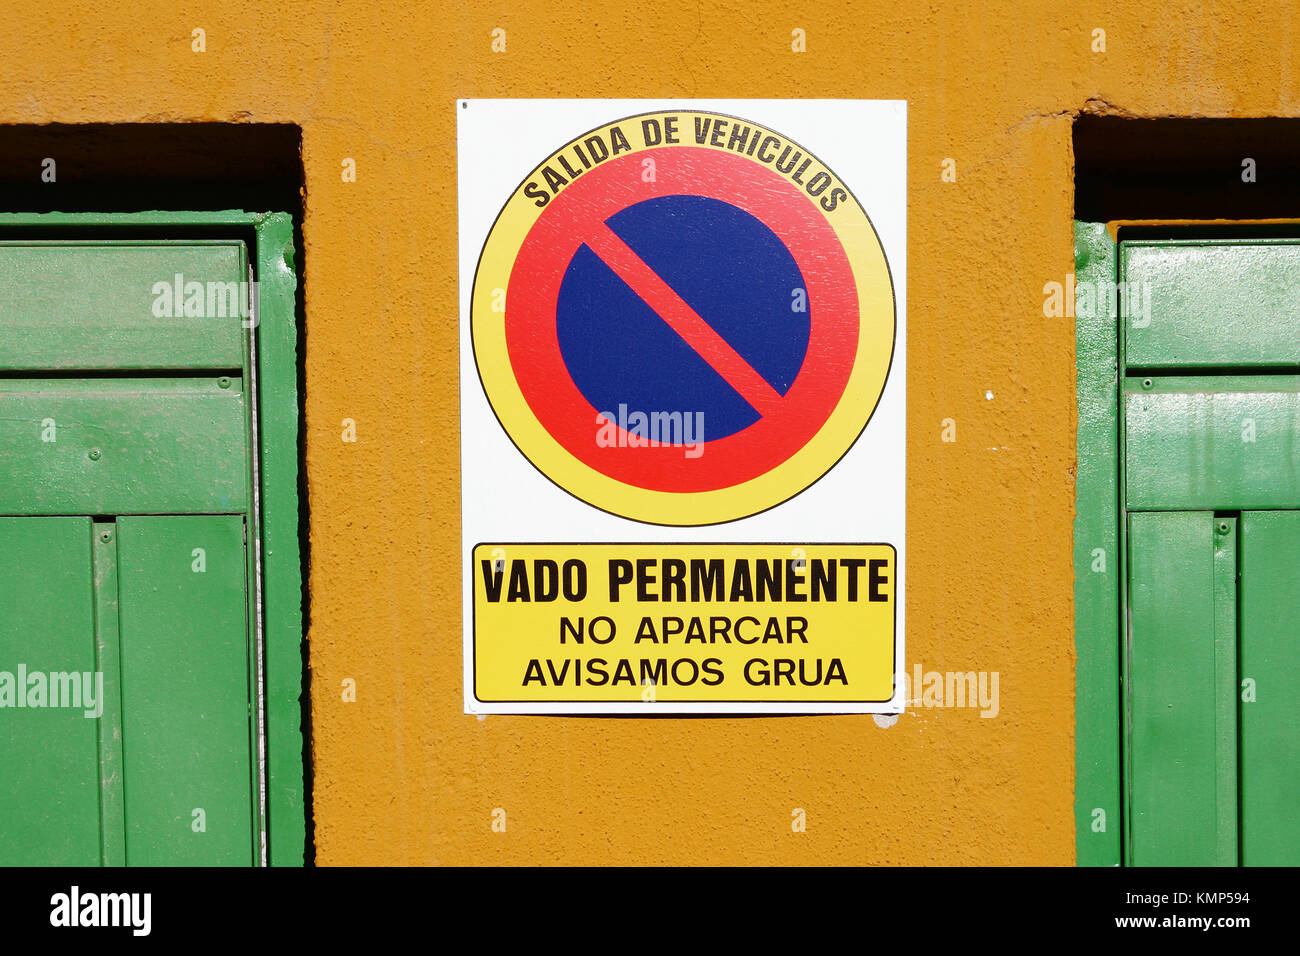 Sign in Spanish advising Vehicle Exit and No Parking or